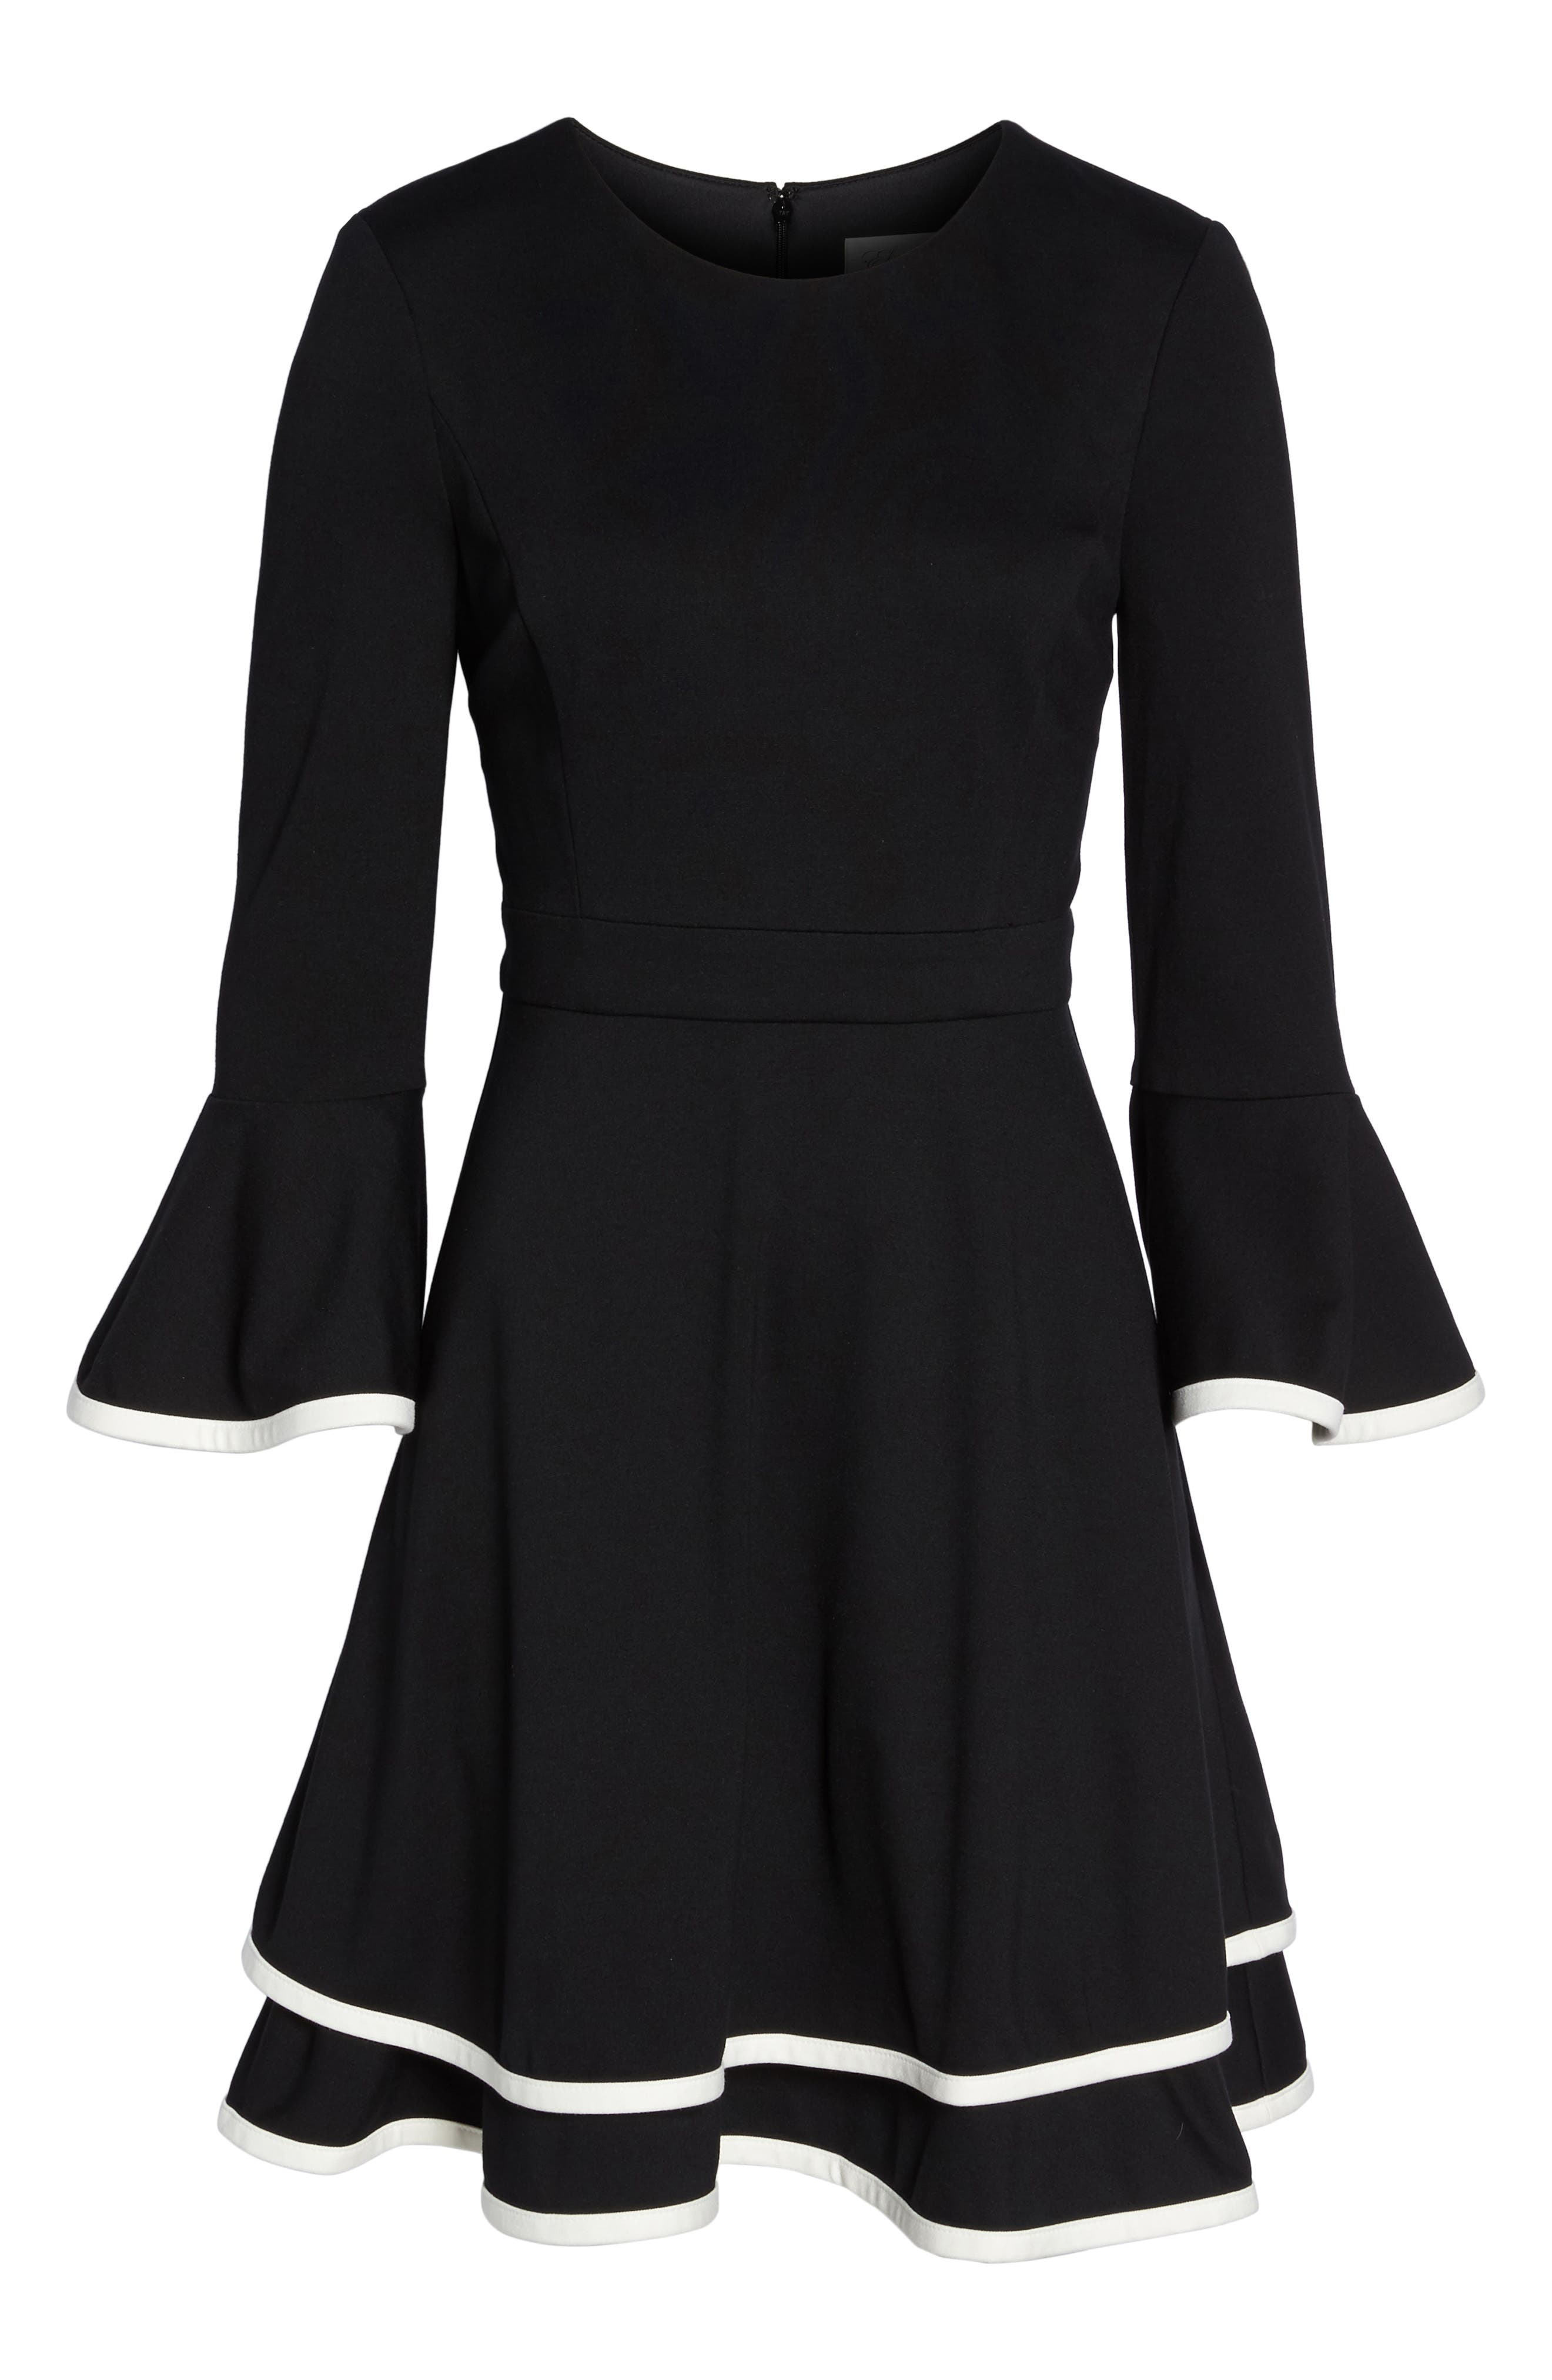 ELIZA J, Bell Sleeve Fit & Flare Dress, Alternate thumbnail 7, color, 006